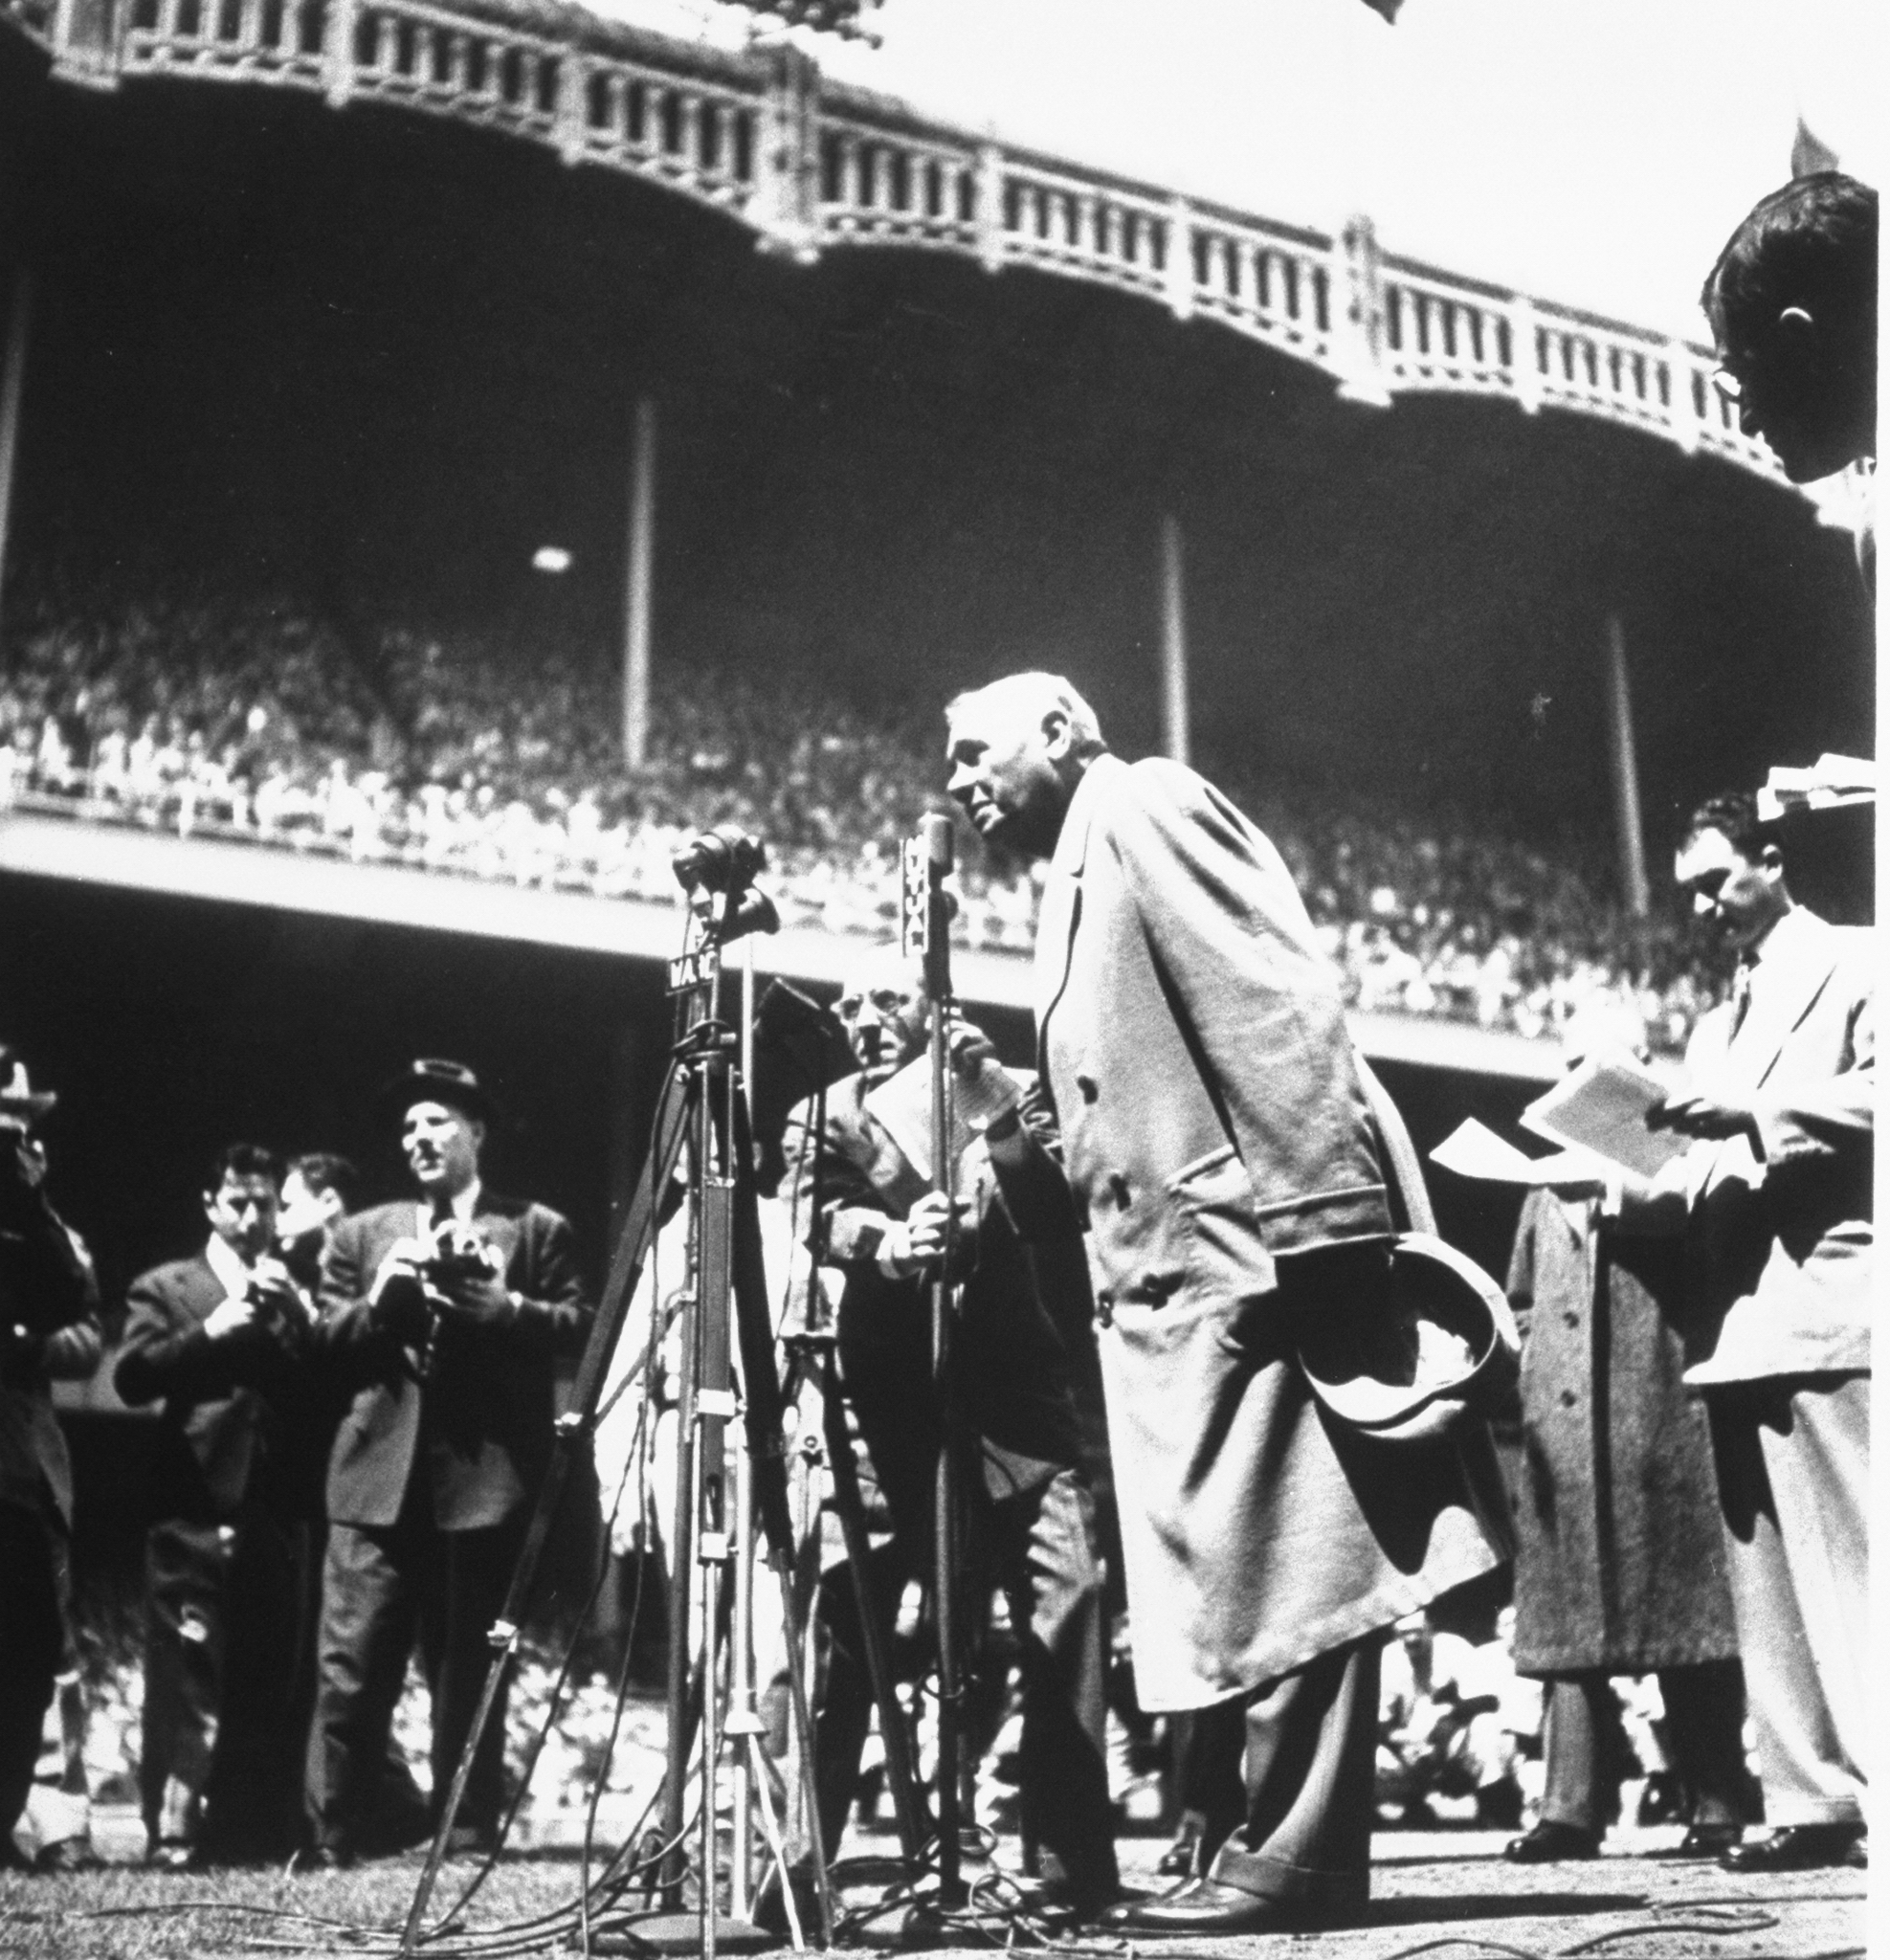 Read Babe Ruth 1948 obituary, was unforgettable, although Struck Out '